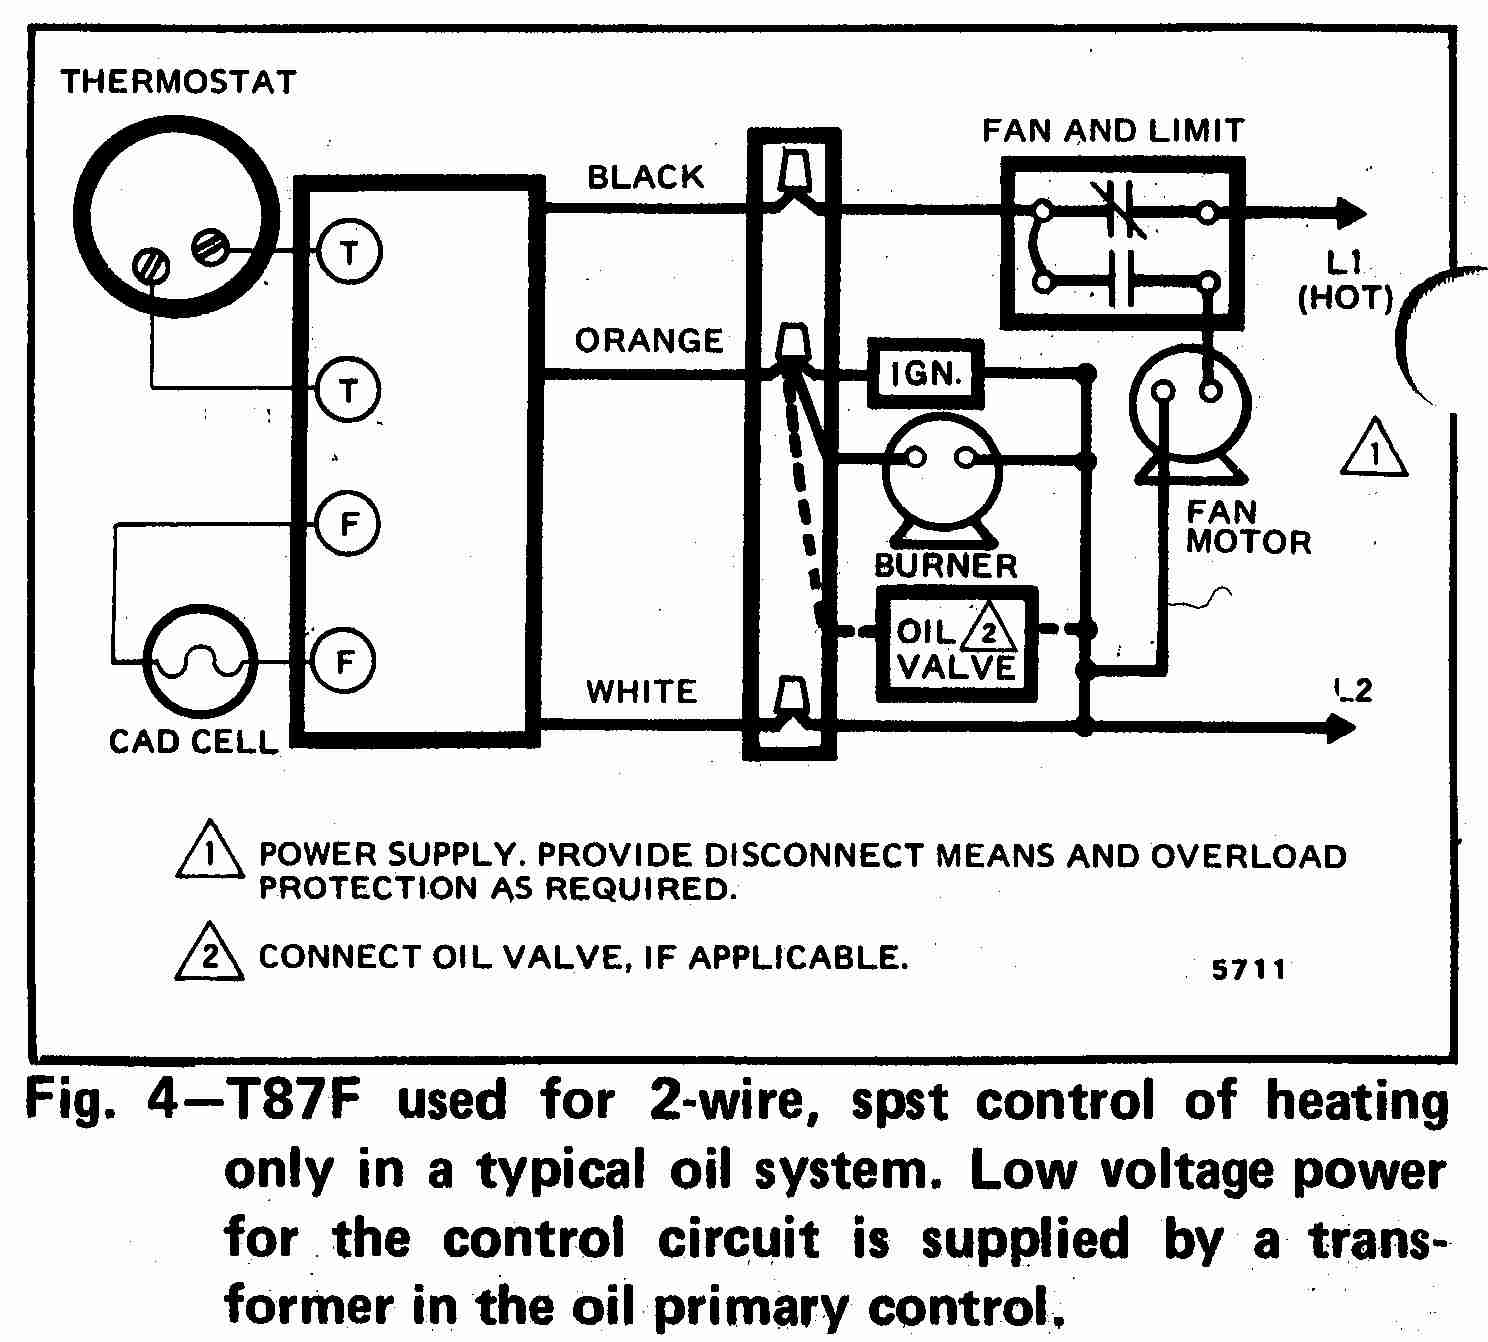 TT_T87F_0002_2W_DJF room thermostat wiring diagrams for hvac systems honeywell line voltage thermostat wiring diagram at bakdesigns.co